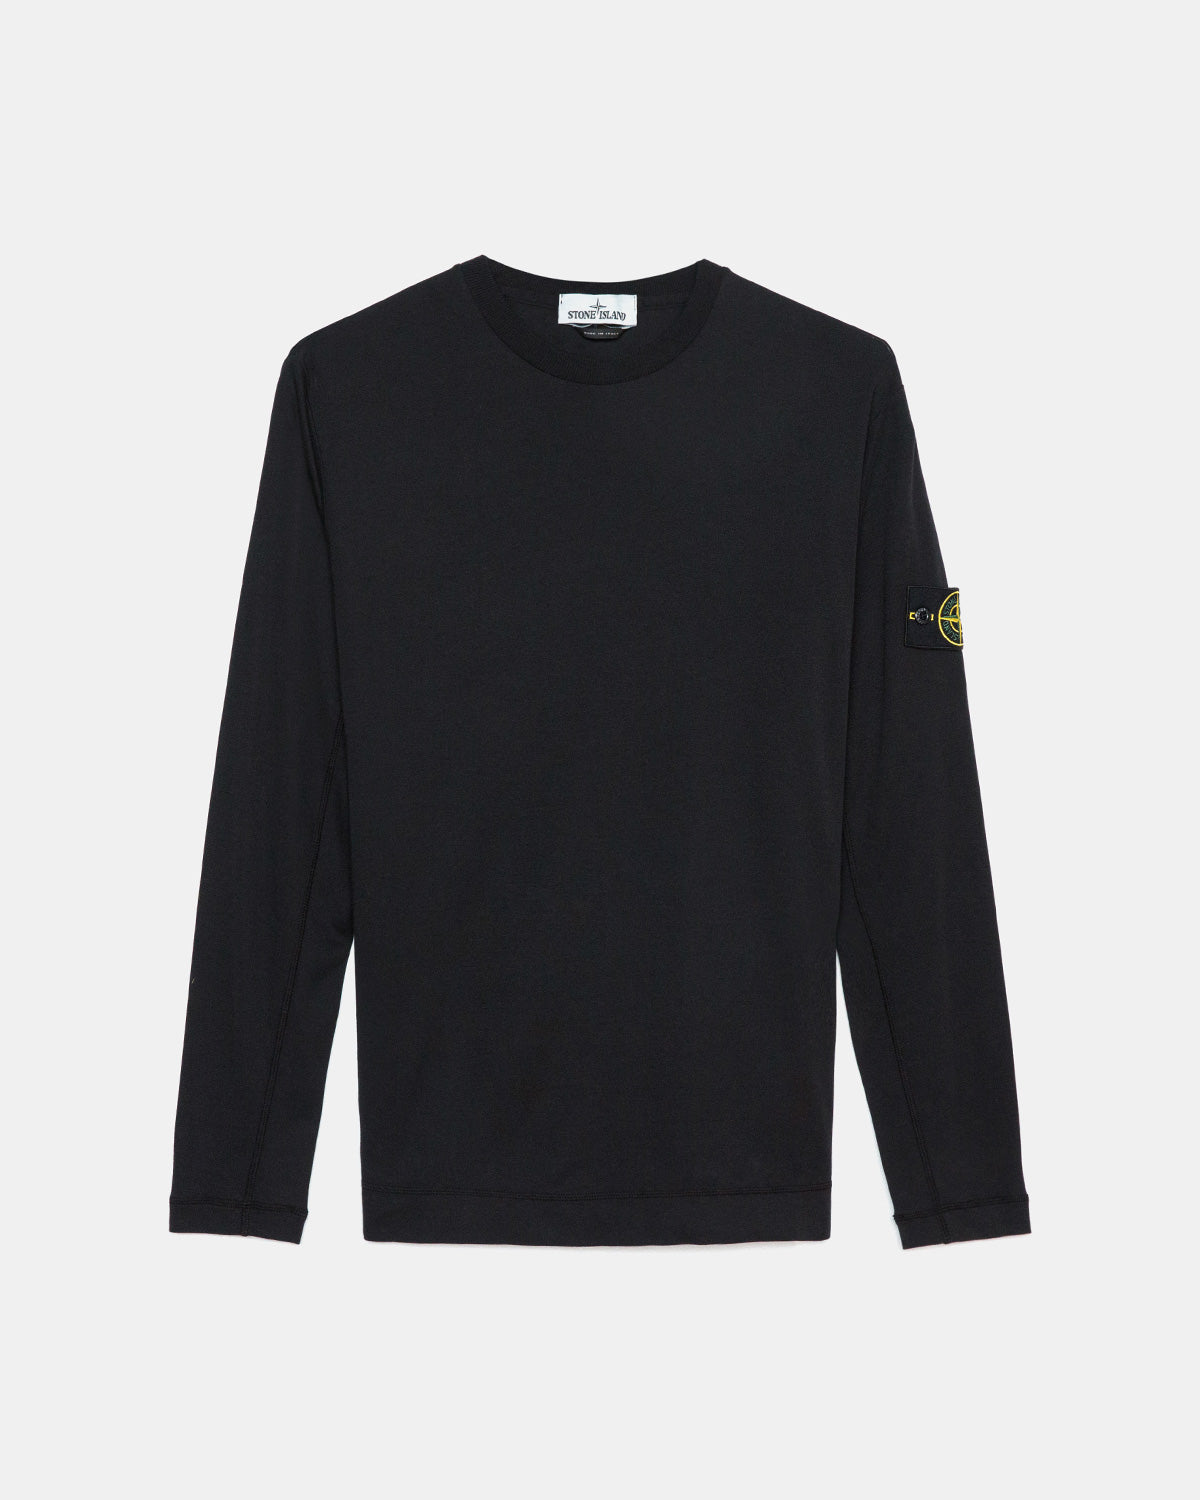 Stone Island - Long Sleeve Tee (Black)